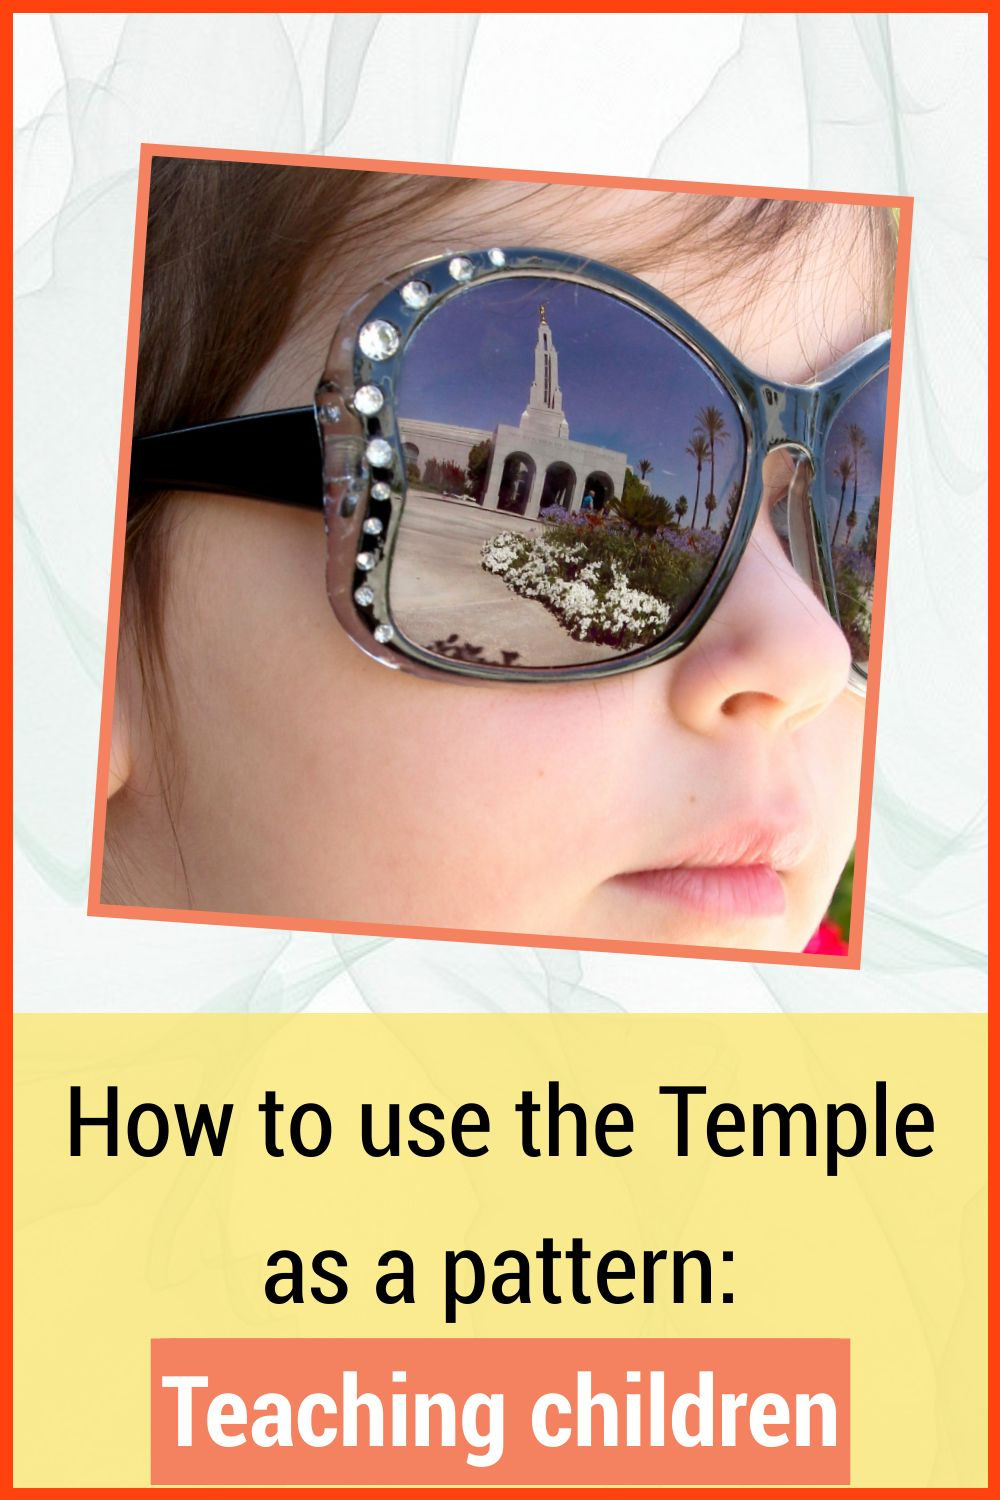 How to use the Temple as a pattern: The eternal potential of children